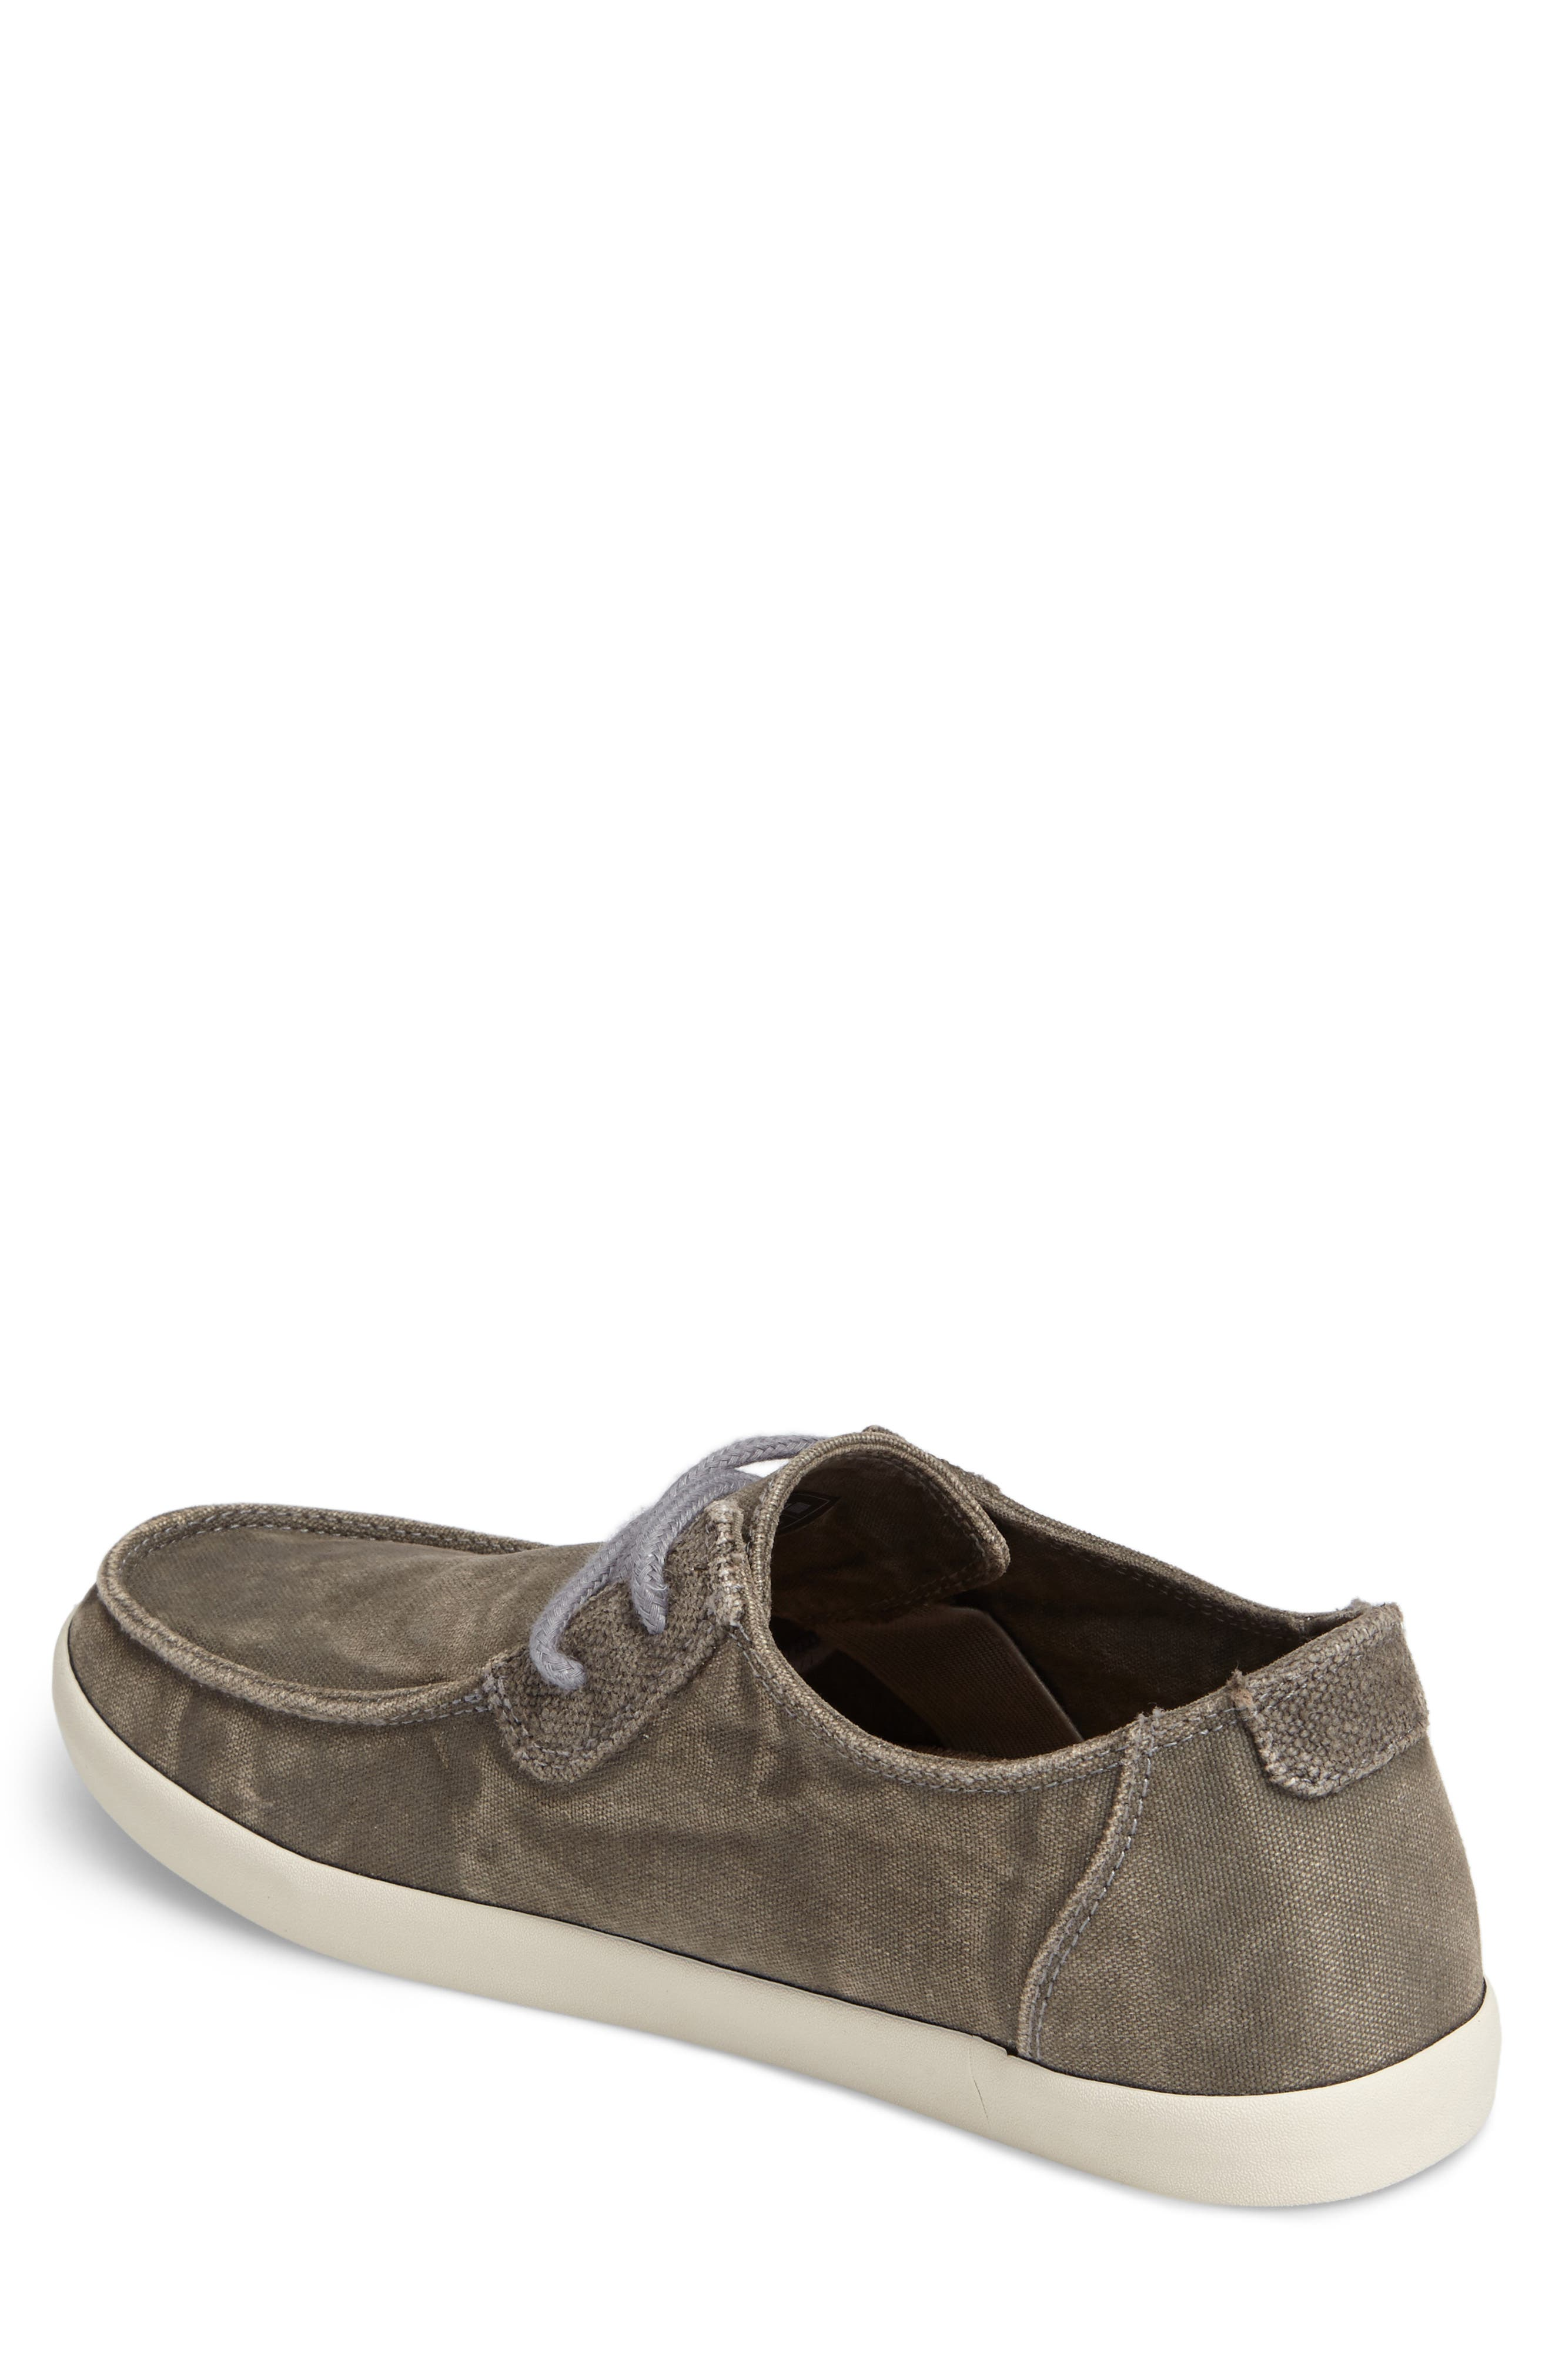 Numami Sneaker,                             Alternate thumbnail 2, color,                             Washed Grey Canvas